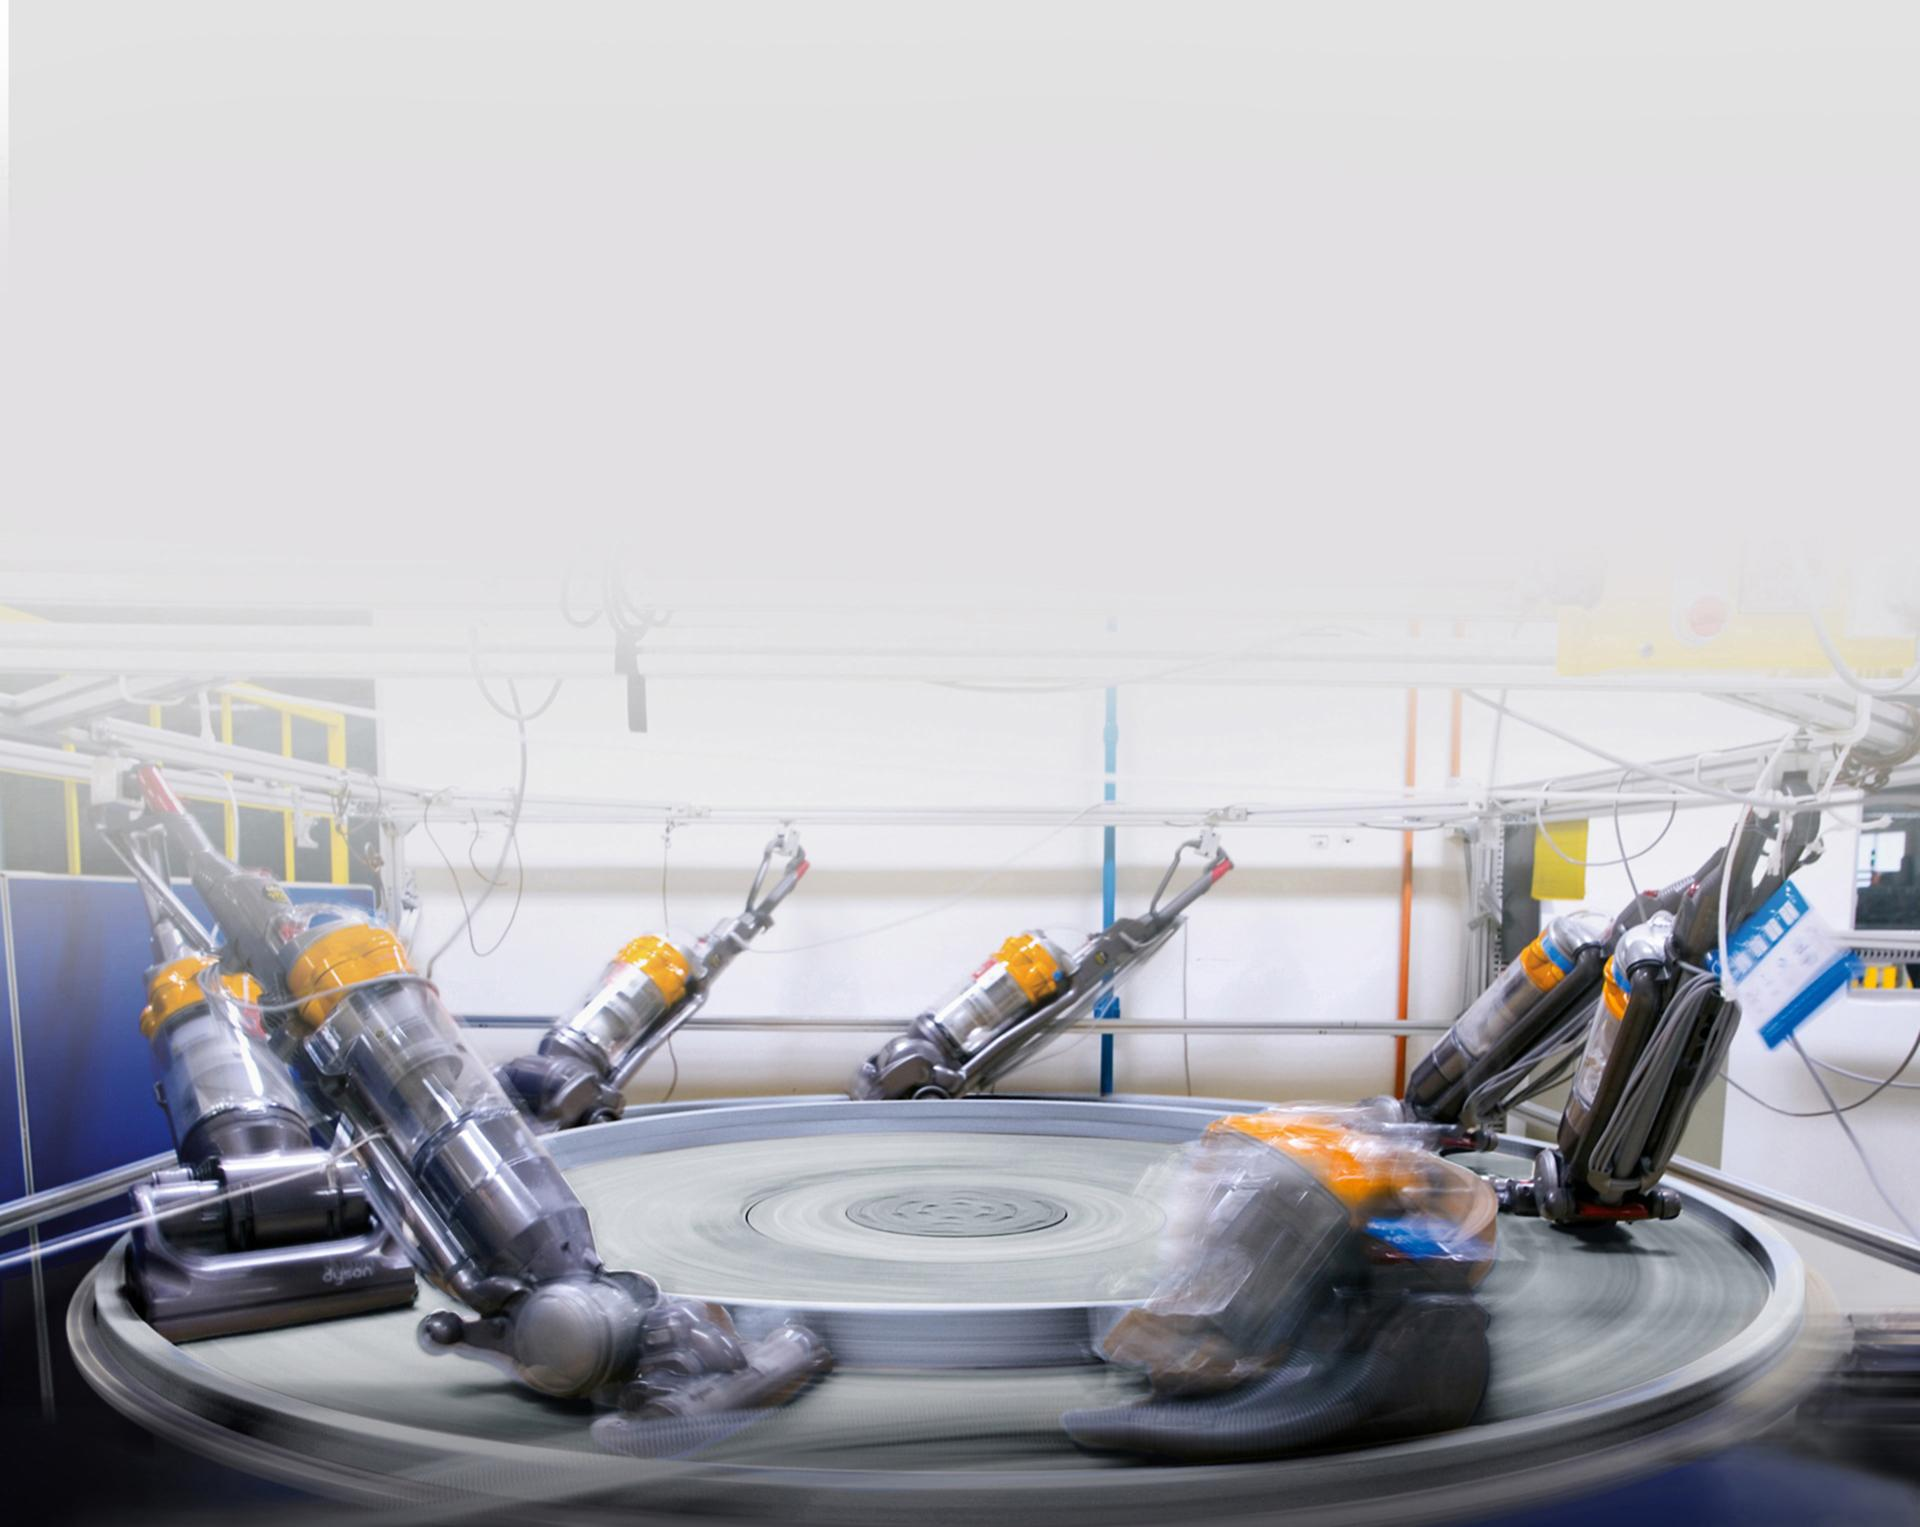 Dyson vacuums in testing